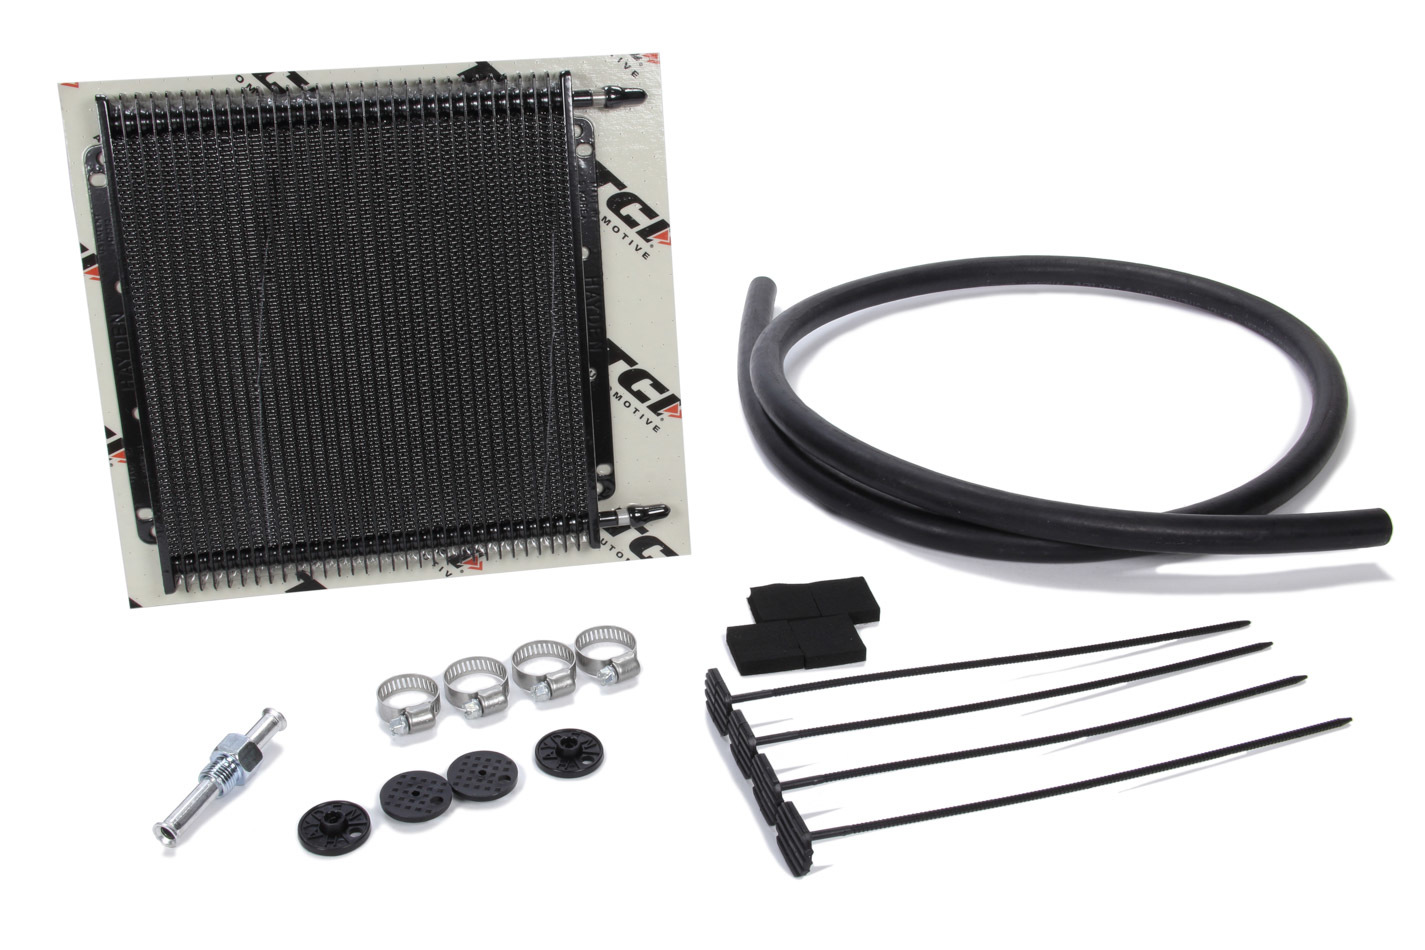 TCI 824104 Fluid Cooler, Max Cool, 11 x 9-1/2 x 3/4 in, Plate and Fin Type, 11/32 in Hose Barb Inlet / Outlet, Fitting / Hardware / Hose, Aluminum, Black, Automatic Transmission, Kit